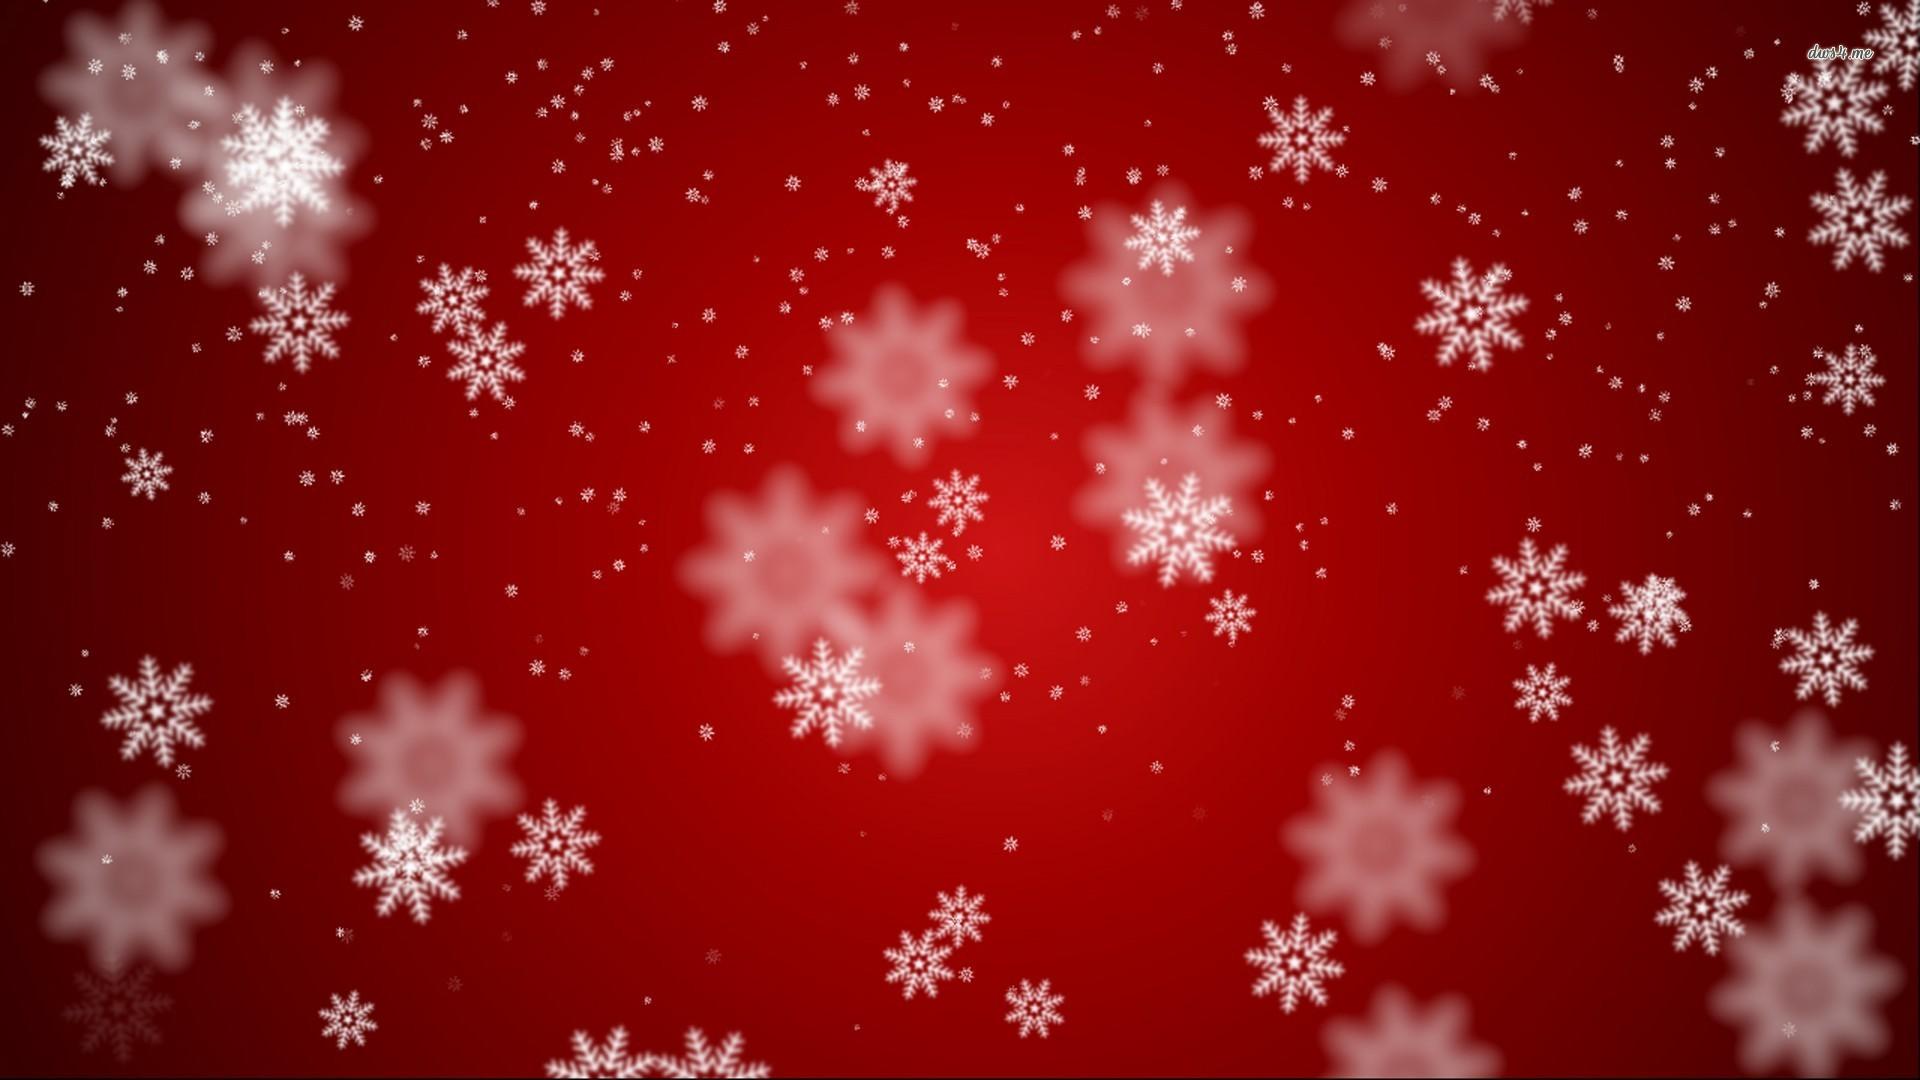 Images Of Snow Falling Wallpaper 17 Wonderful Hd Snowflakes Wallpapers